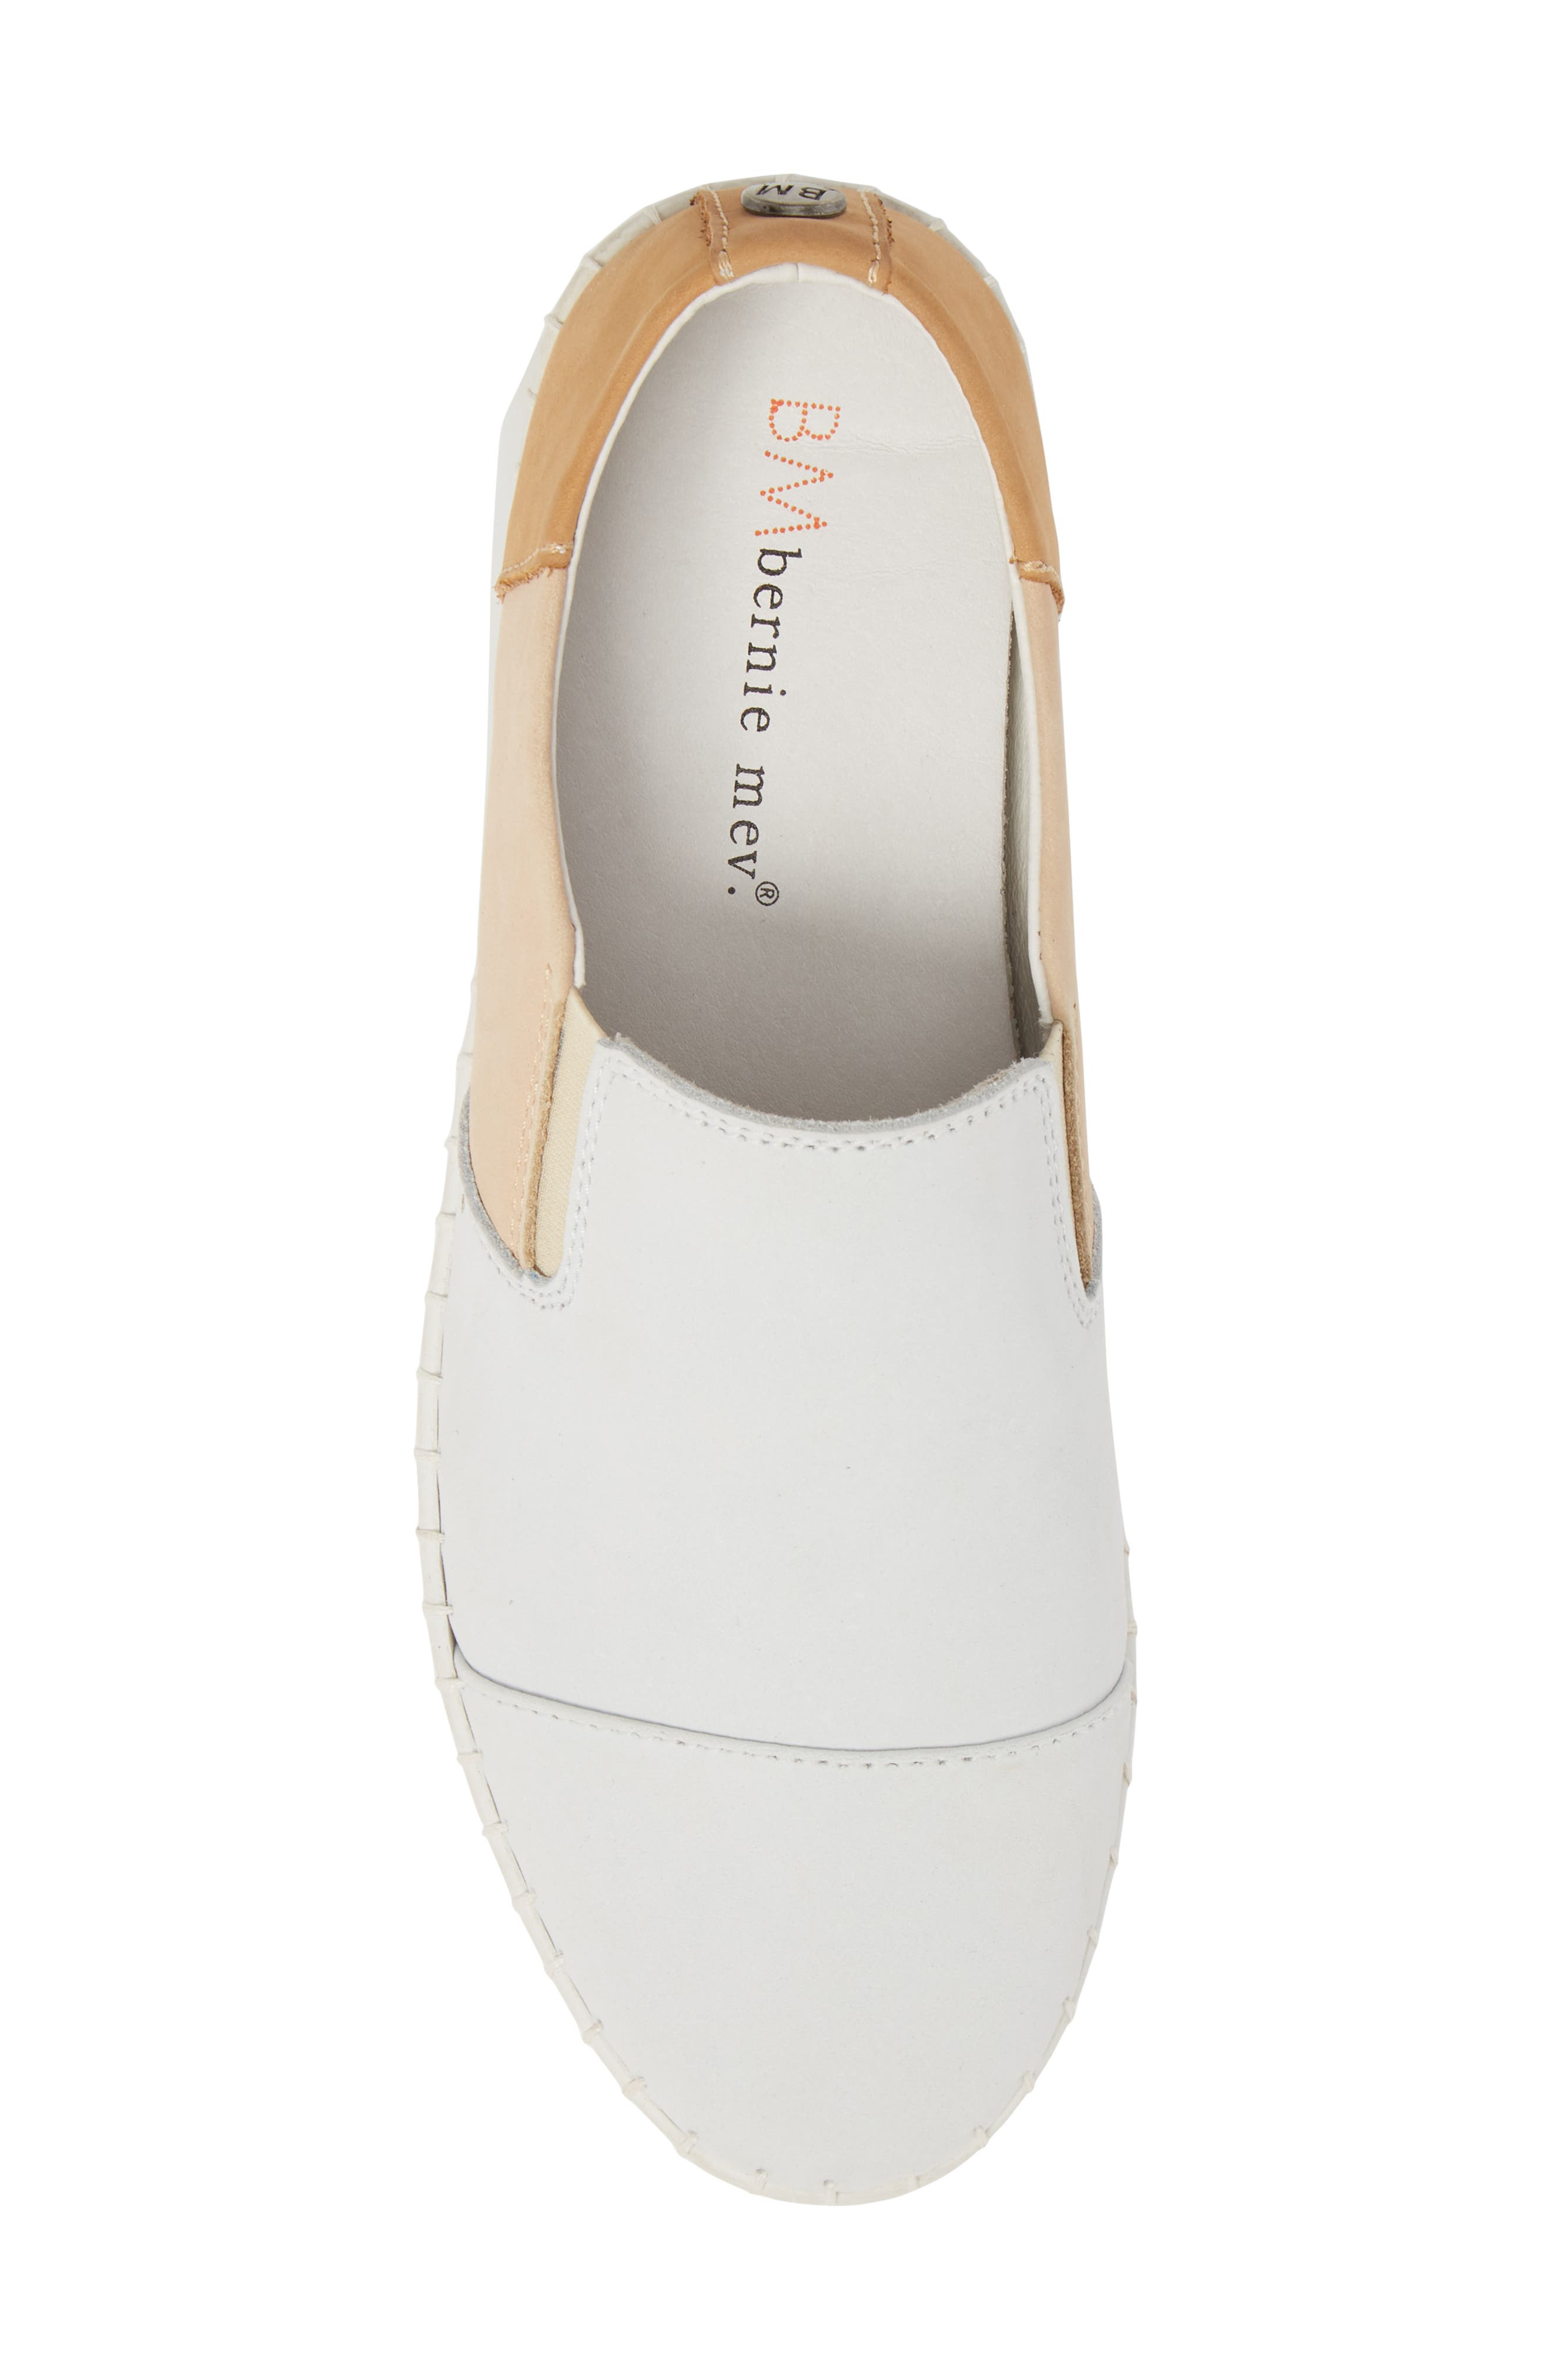 TW107 Slip-On Flat,                             Alternate thumbnail 5, color,                             NUDE MIX LEATHER